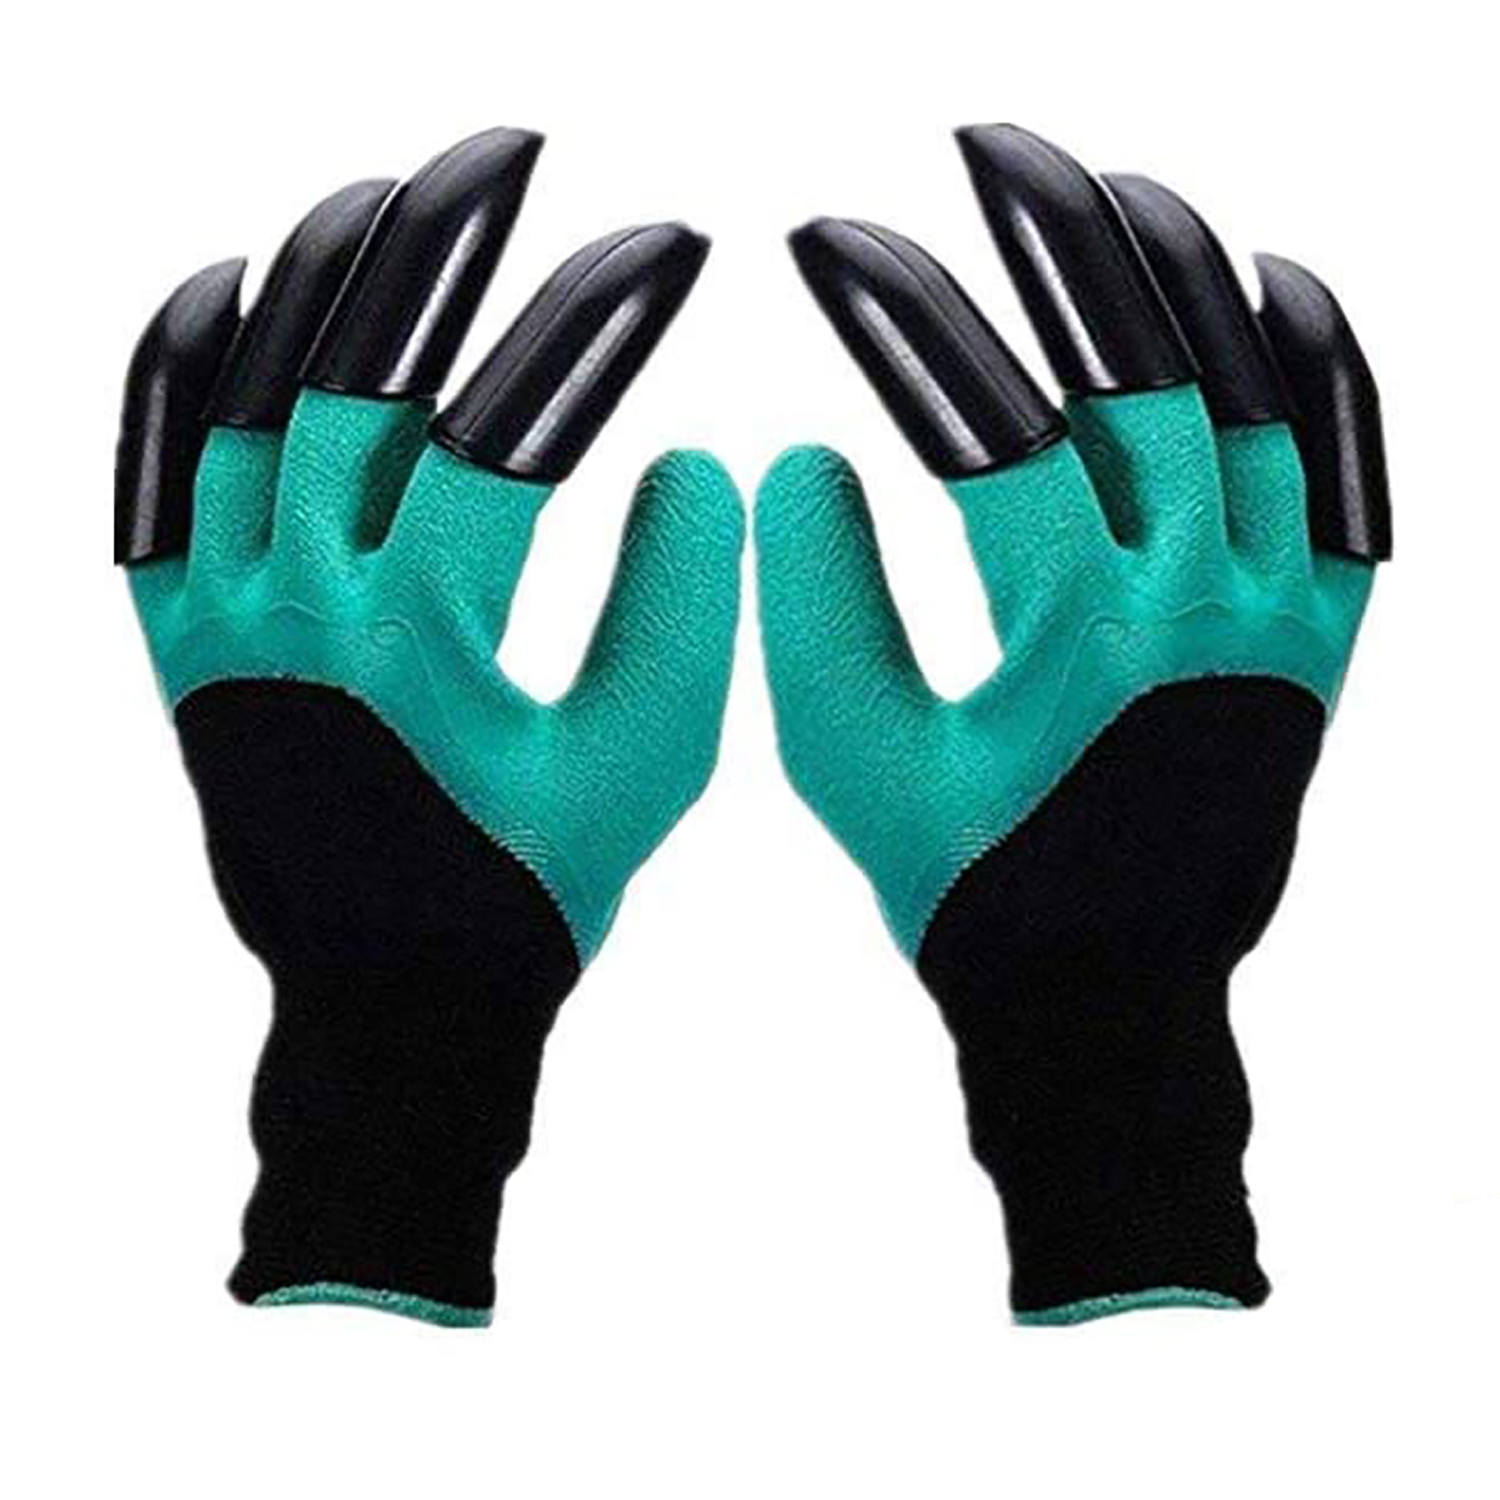 Garden Genie gardening gloves with claw